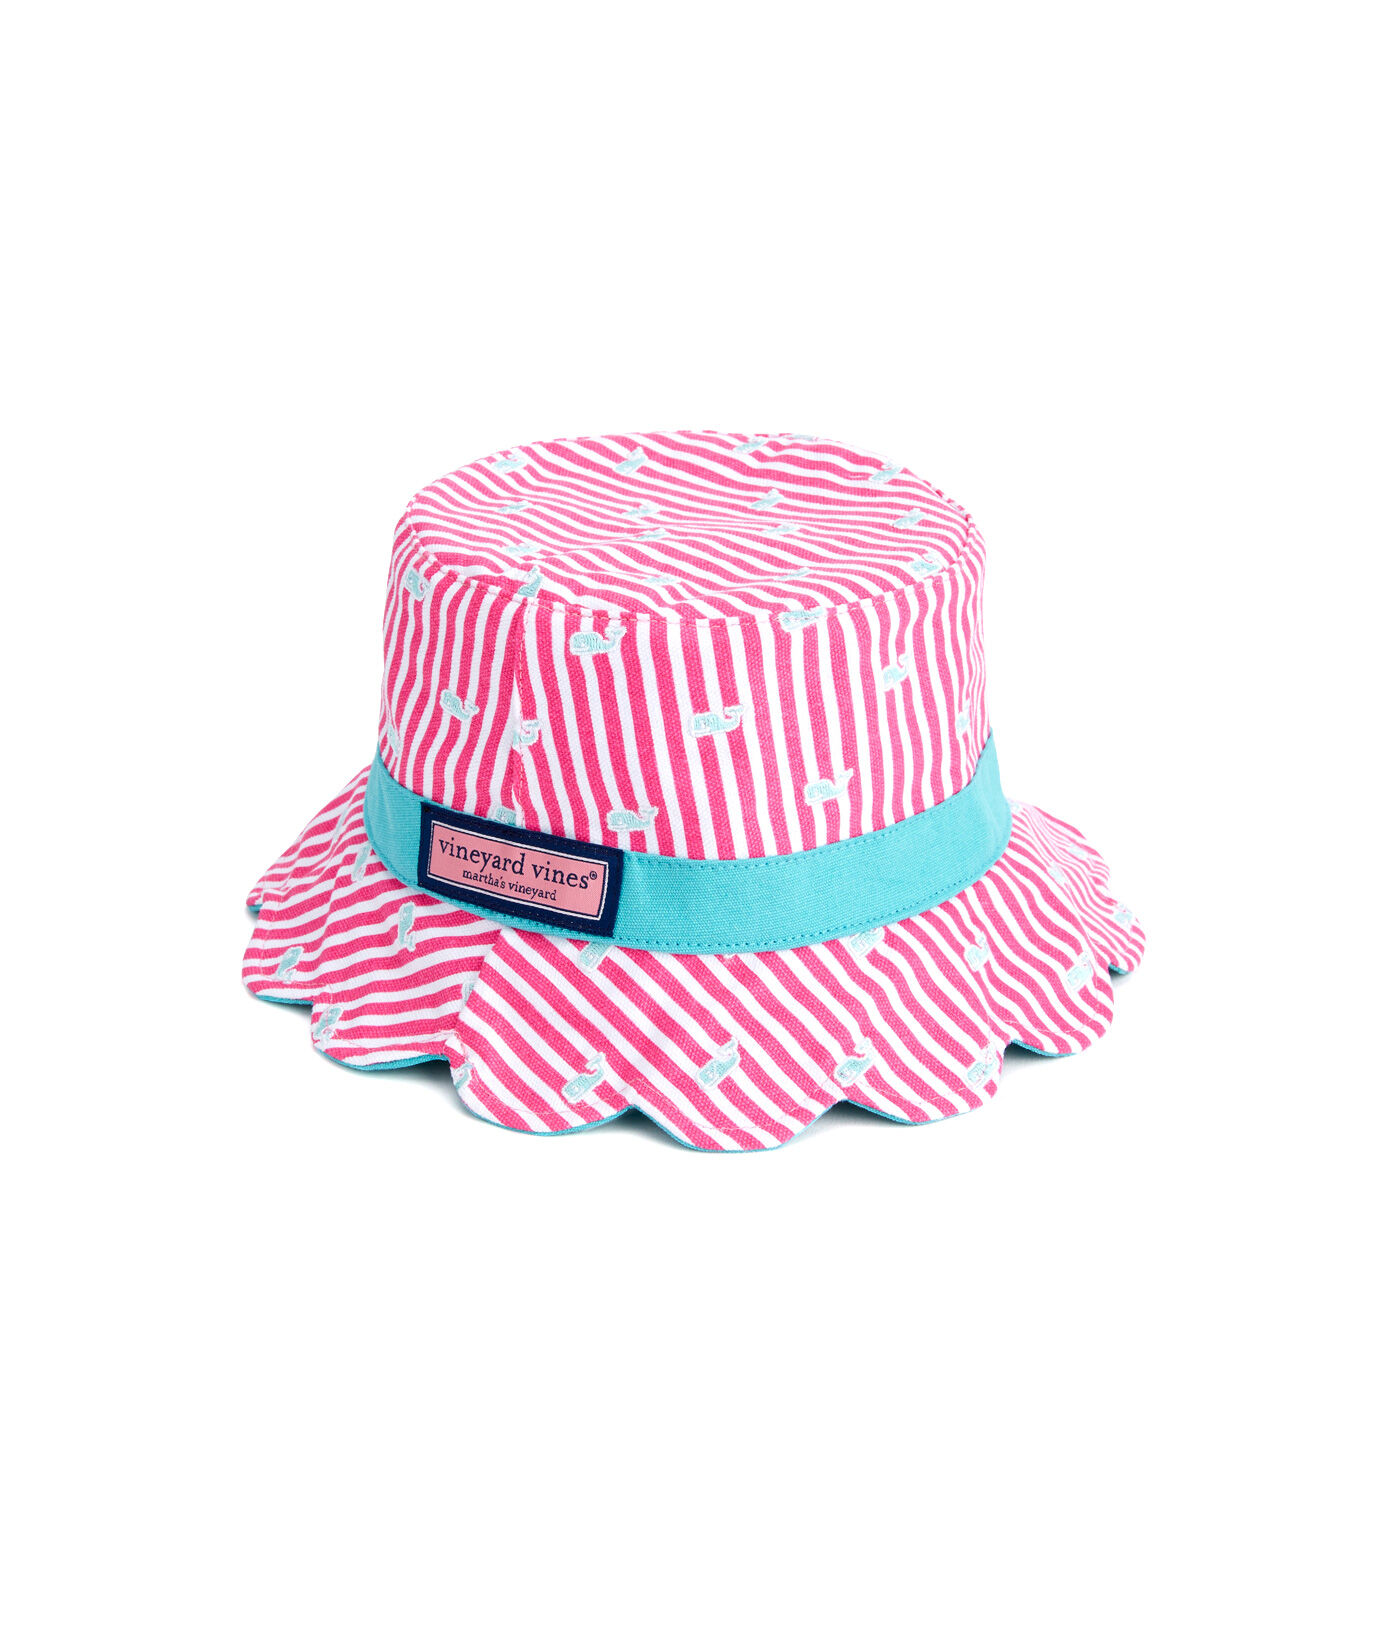 662e6dc1284b1 ... where can i buy girls striped embroidered bucket hat 41429 45b3a